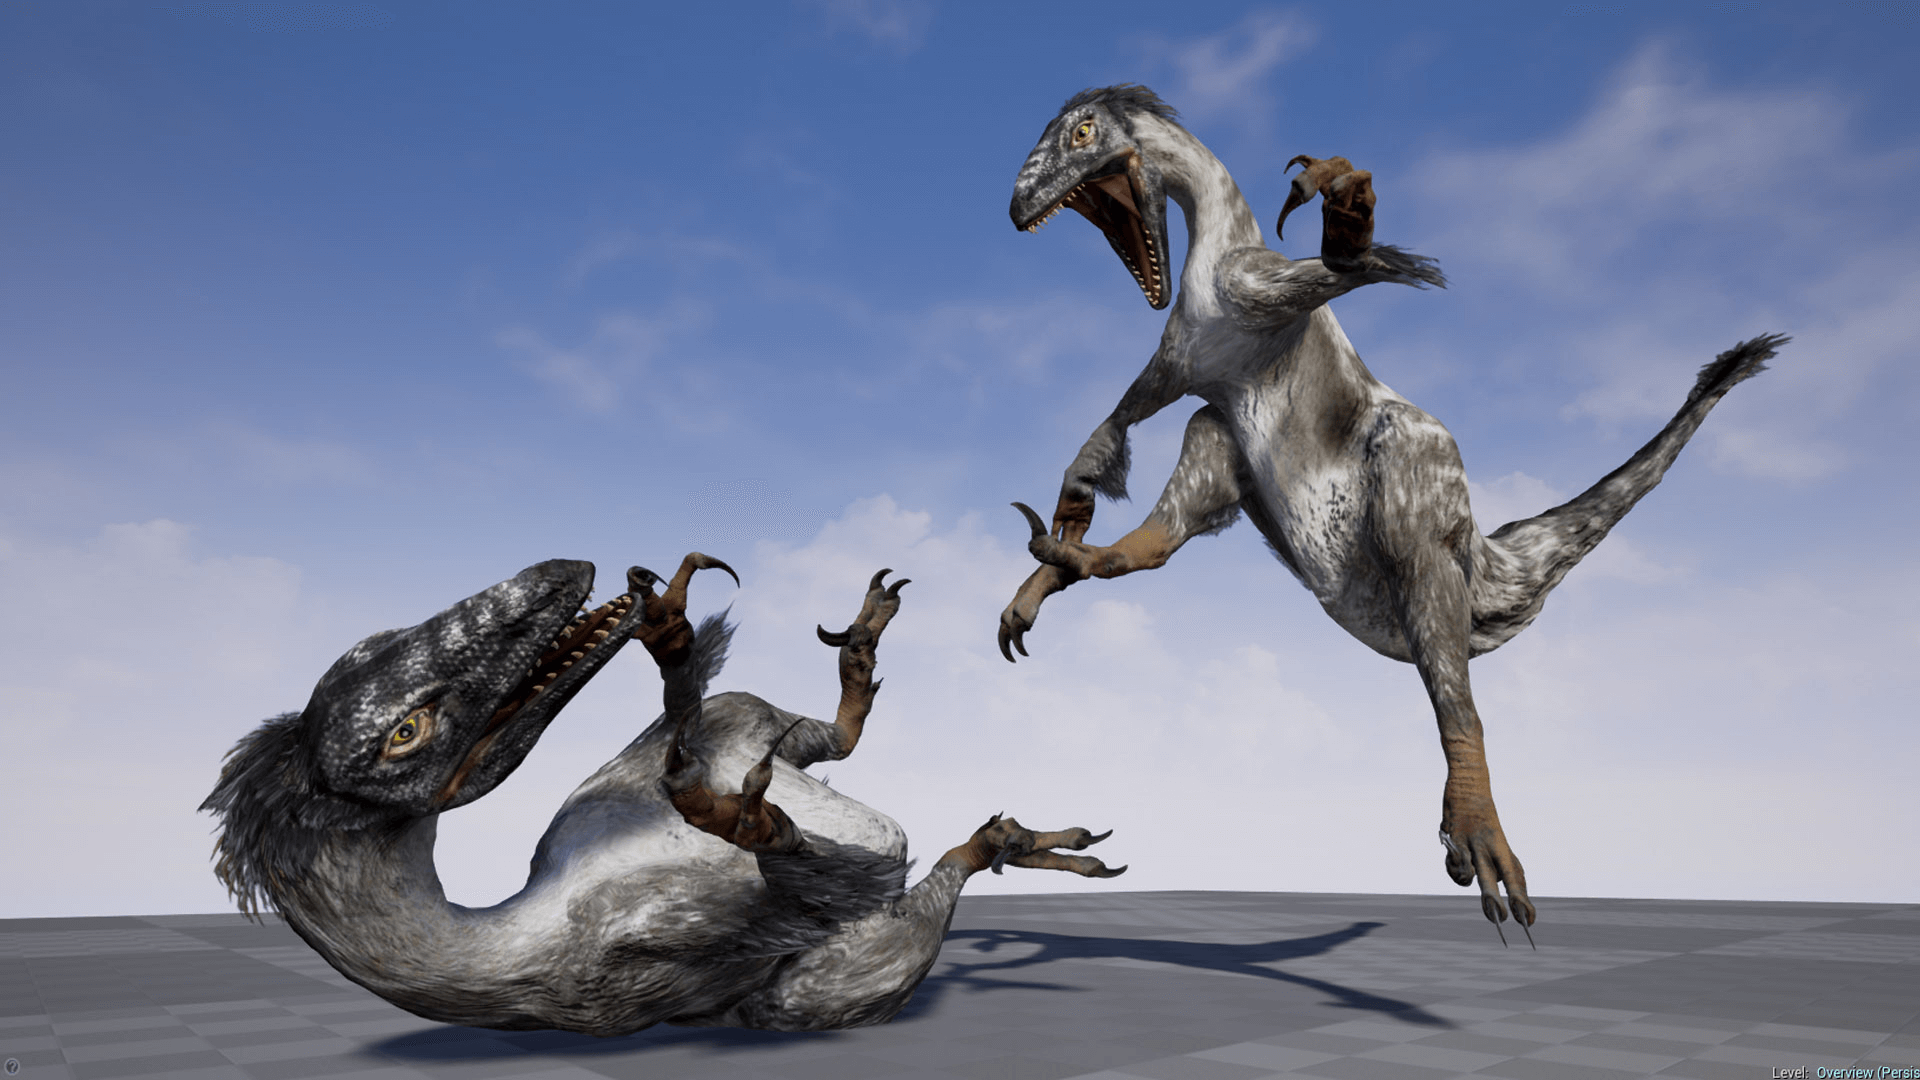 Raptor dinosaur animated by kubold in characters ue4 marketplace - Raptor dinosaure ...